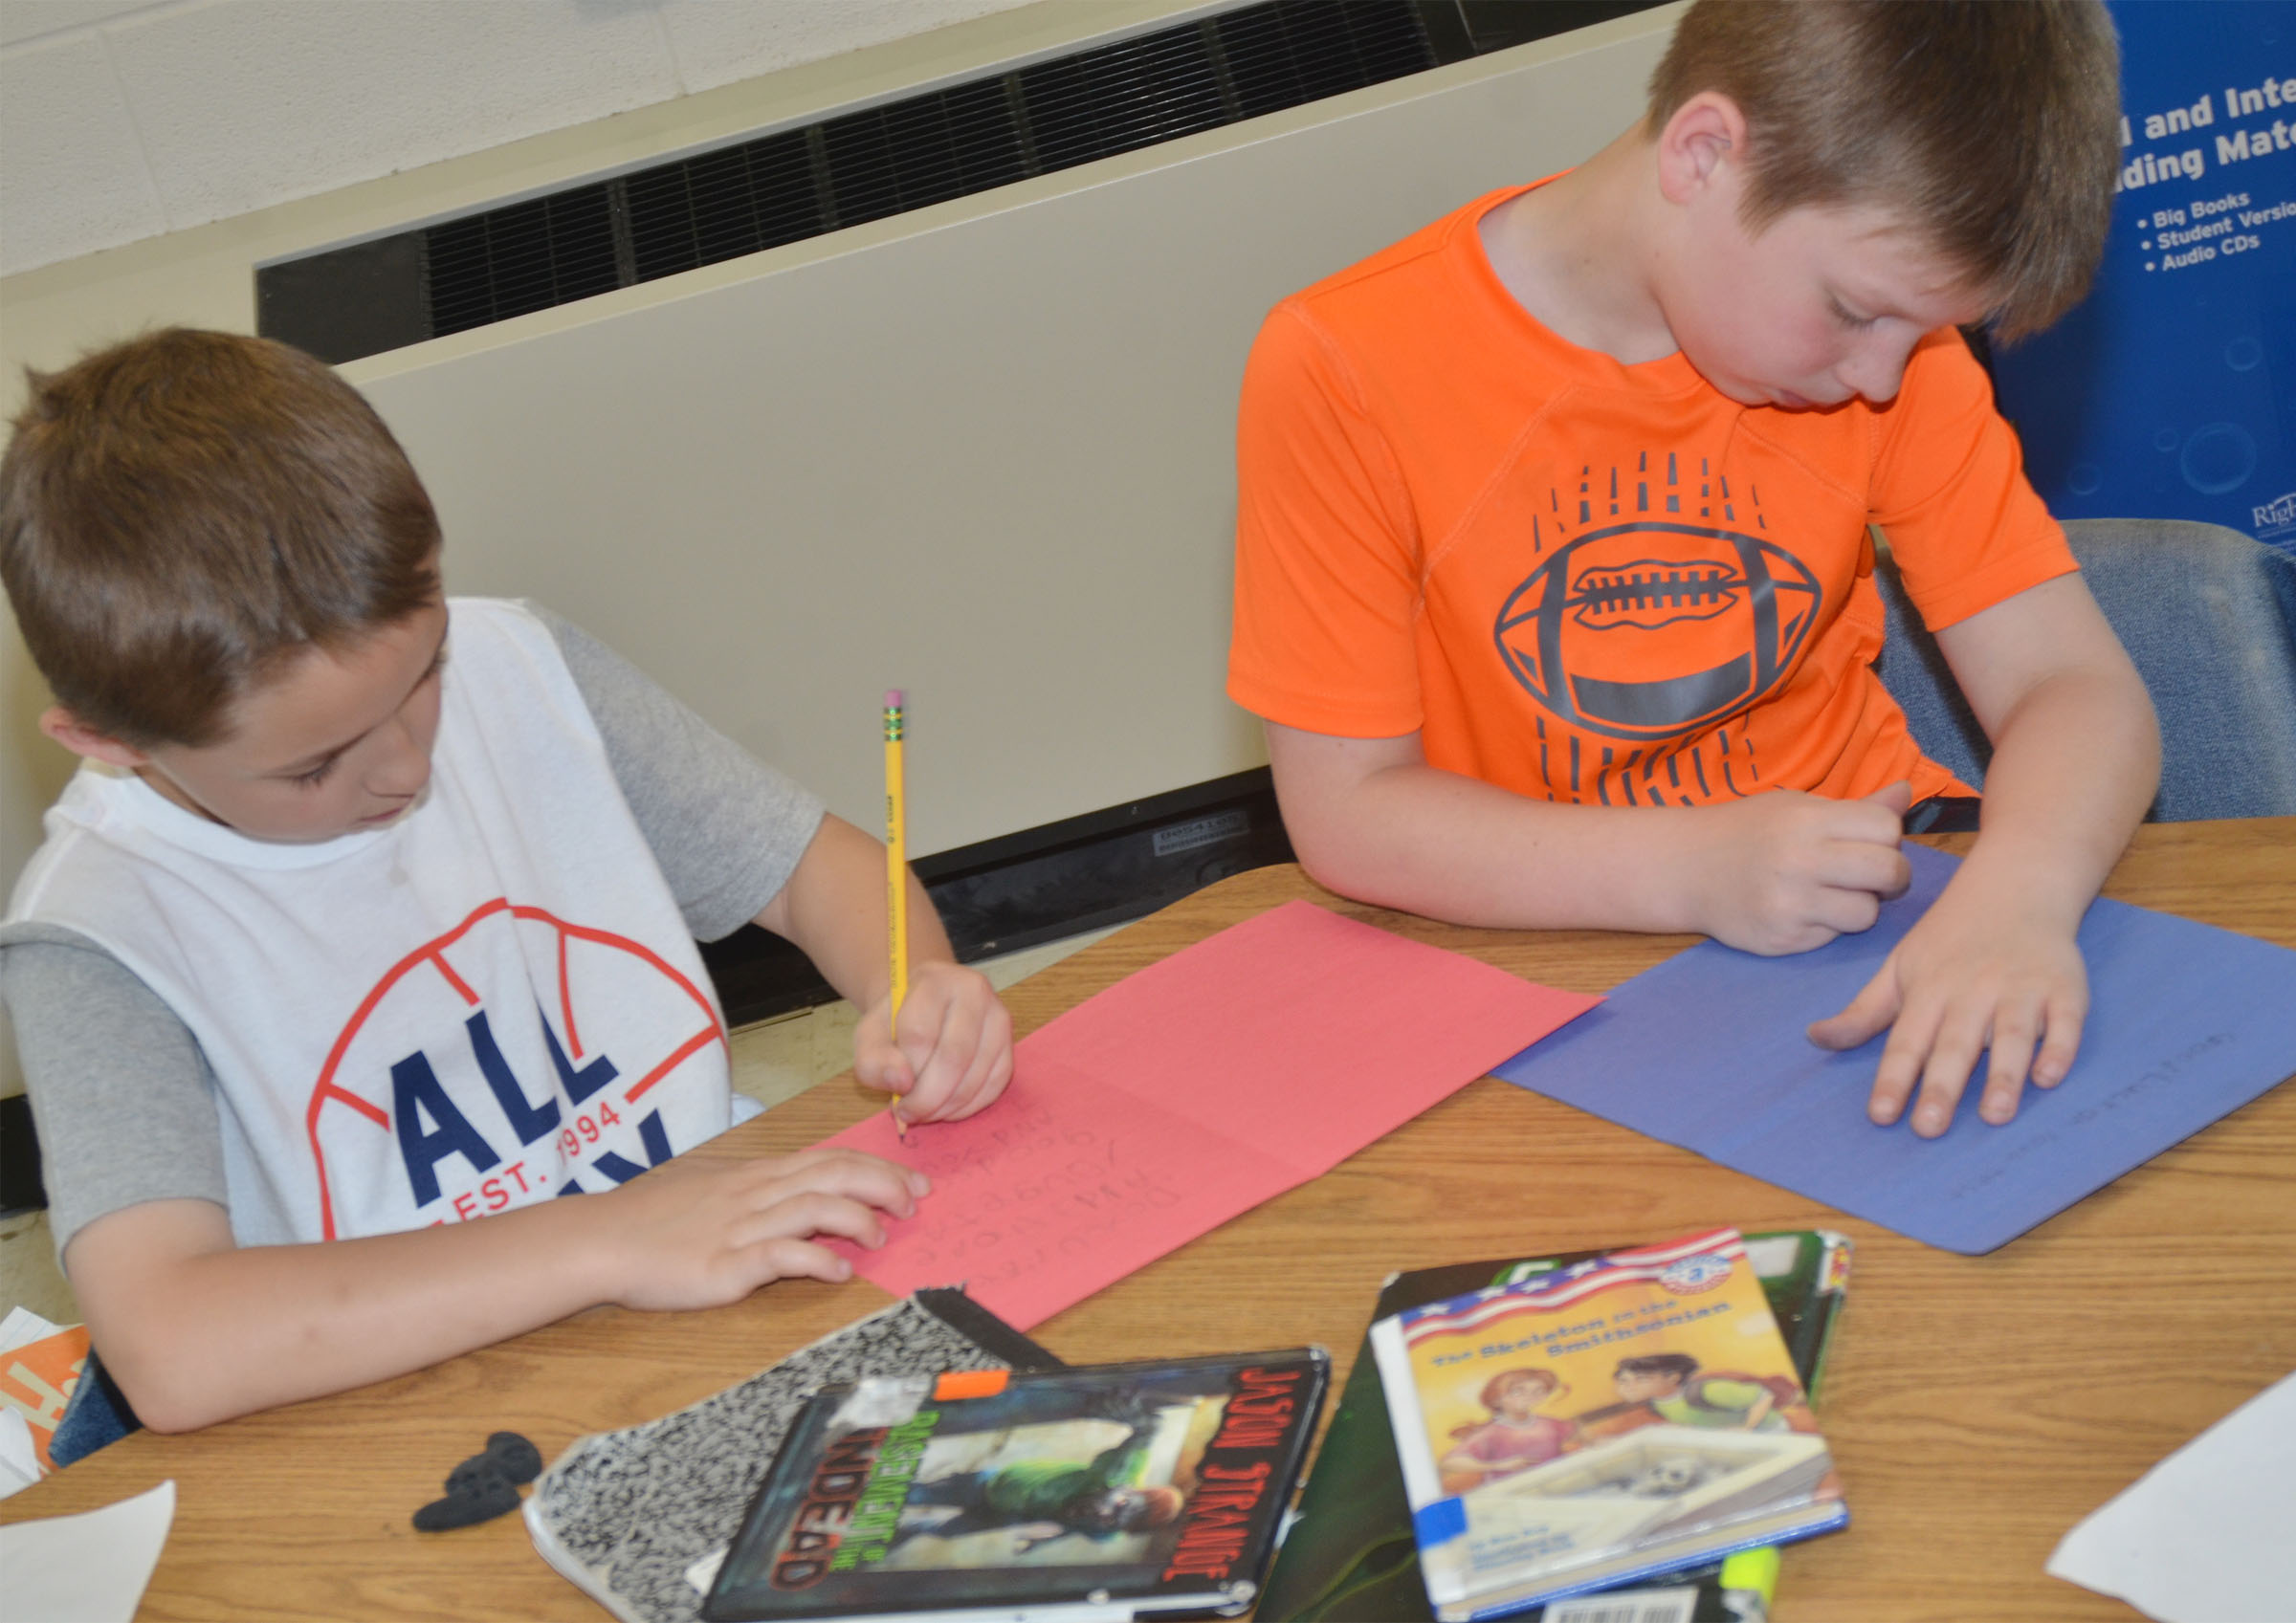 CES first-graders Aiden Forrest, at left, and Brody Sidebottom make cards for third-grade students.